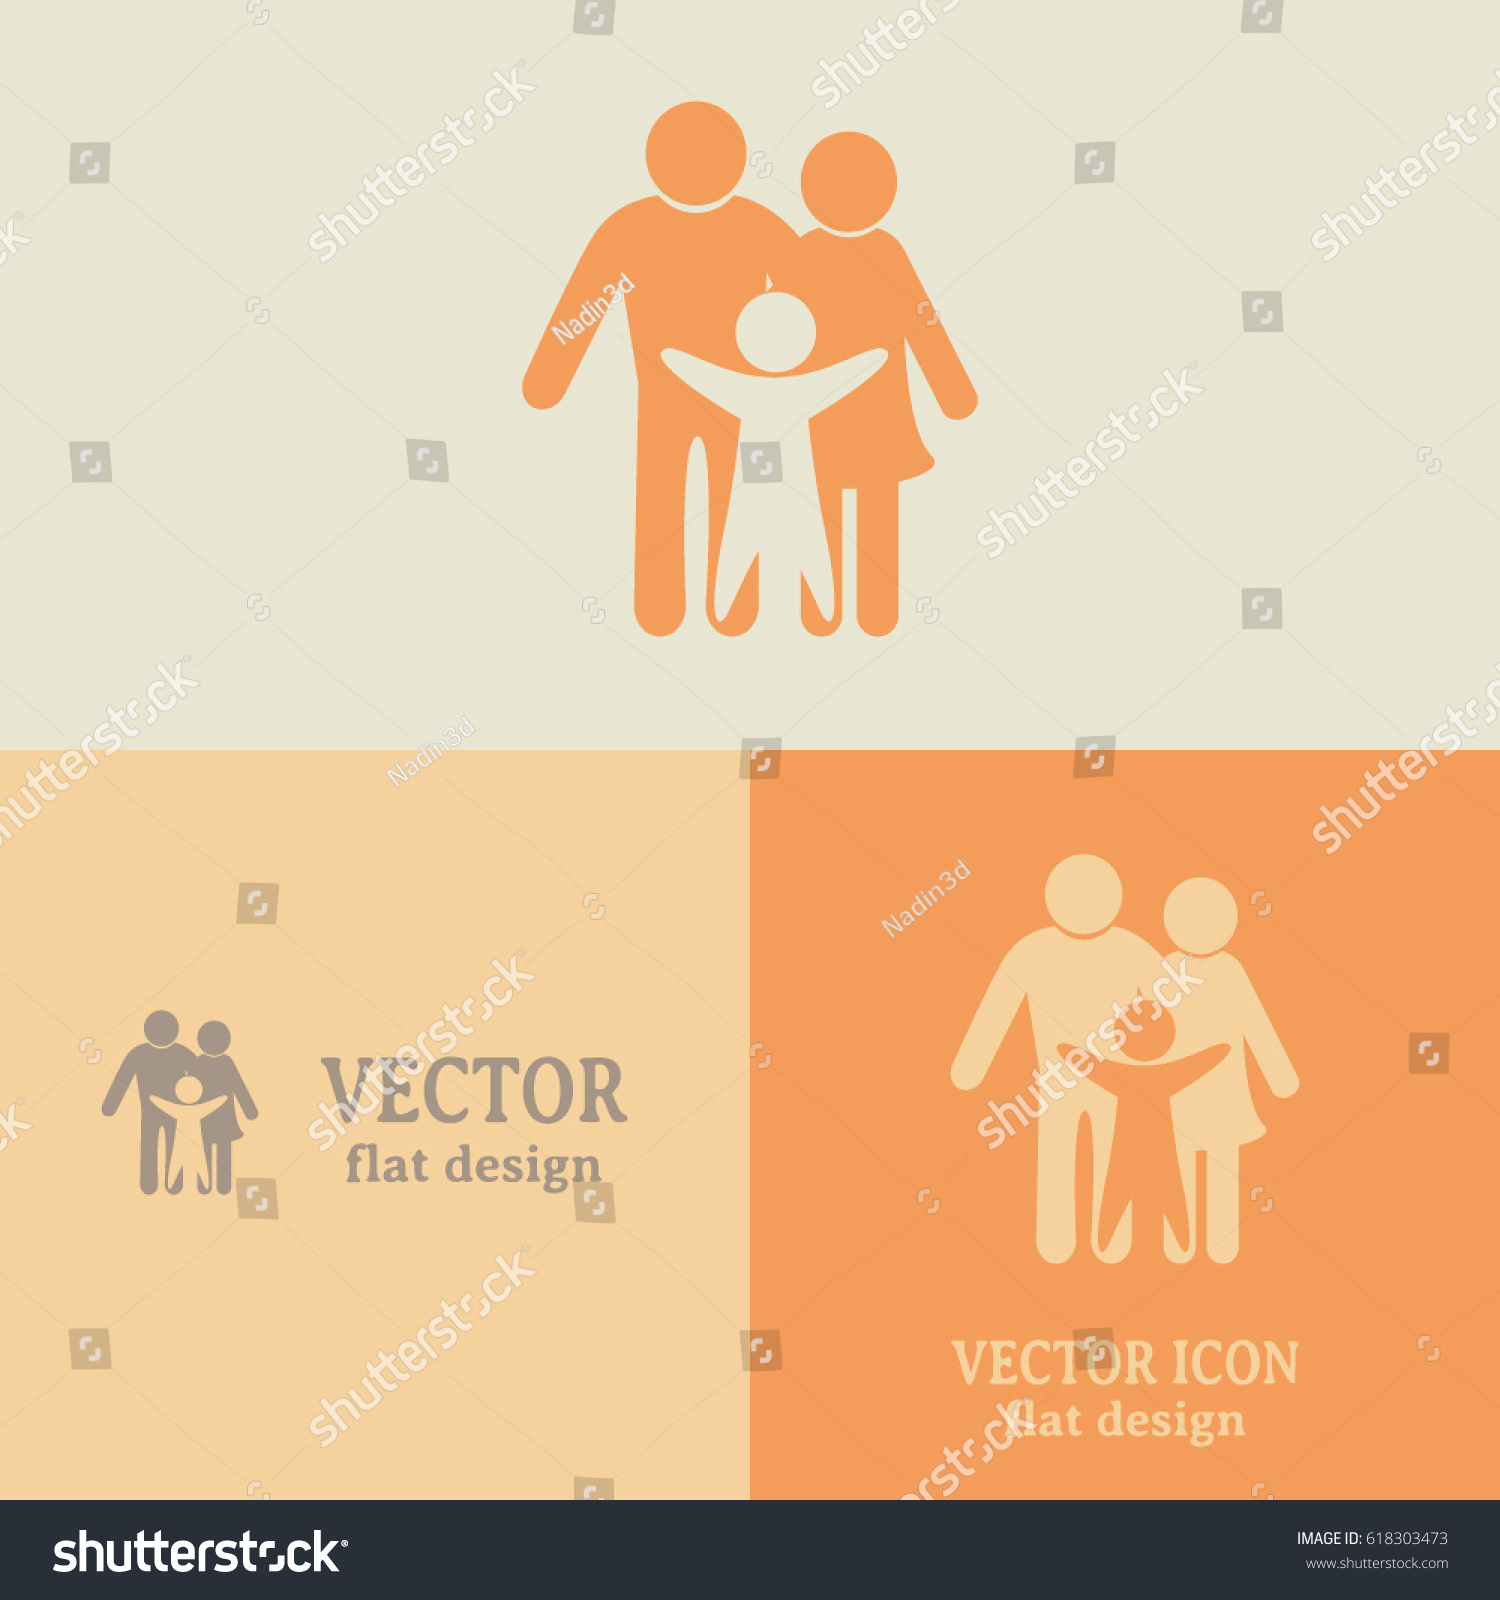 Business Cards Design Happy Family Icon Stock Vector 618303473 ...